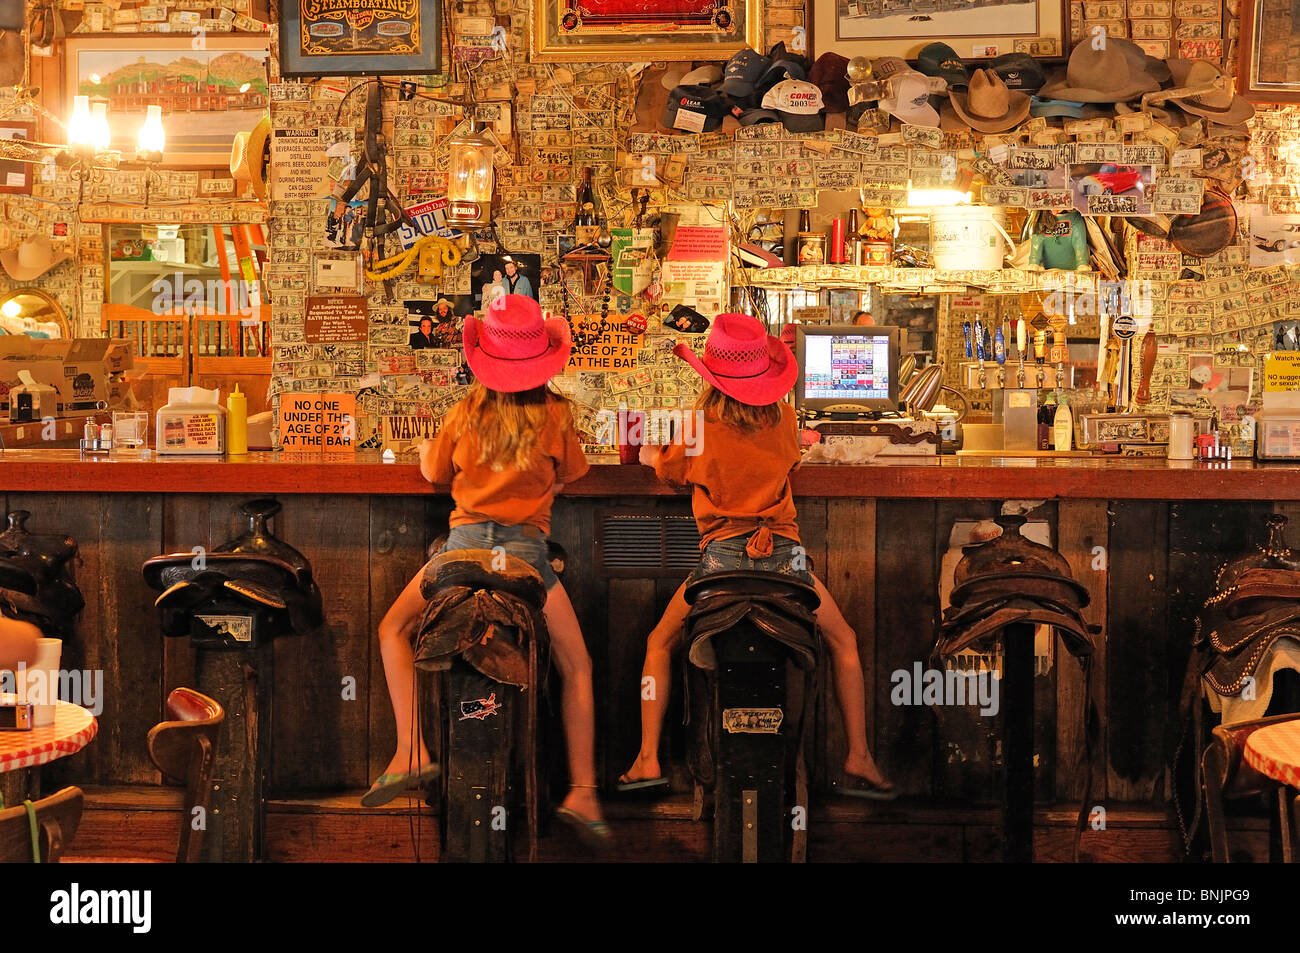 little girls chairs black sling swivel patio two children bar sitting rear view saddle superstition saloon stock photo: 30530985 - alamy